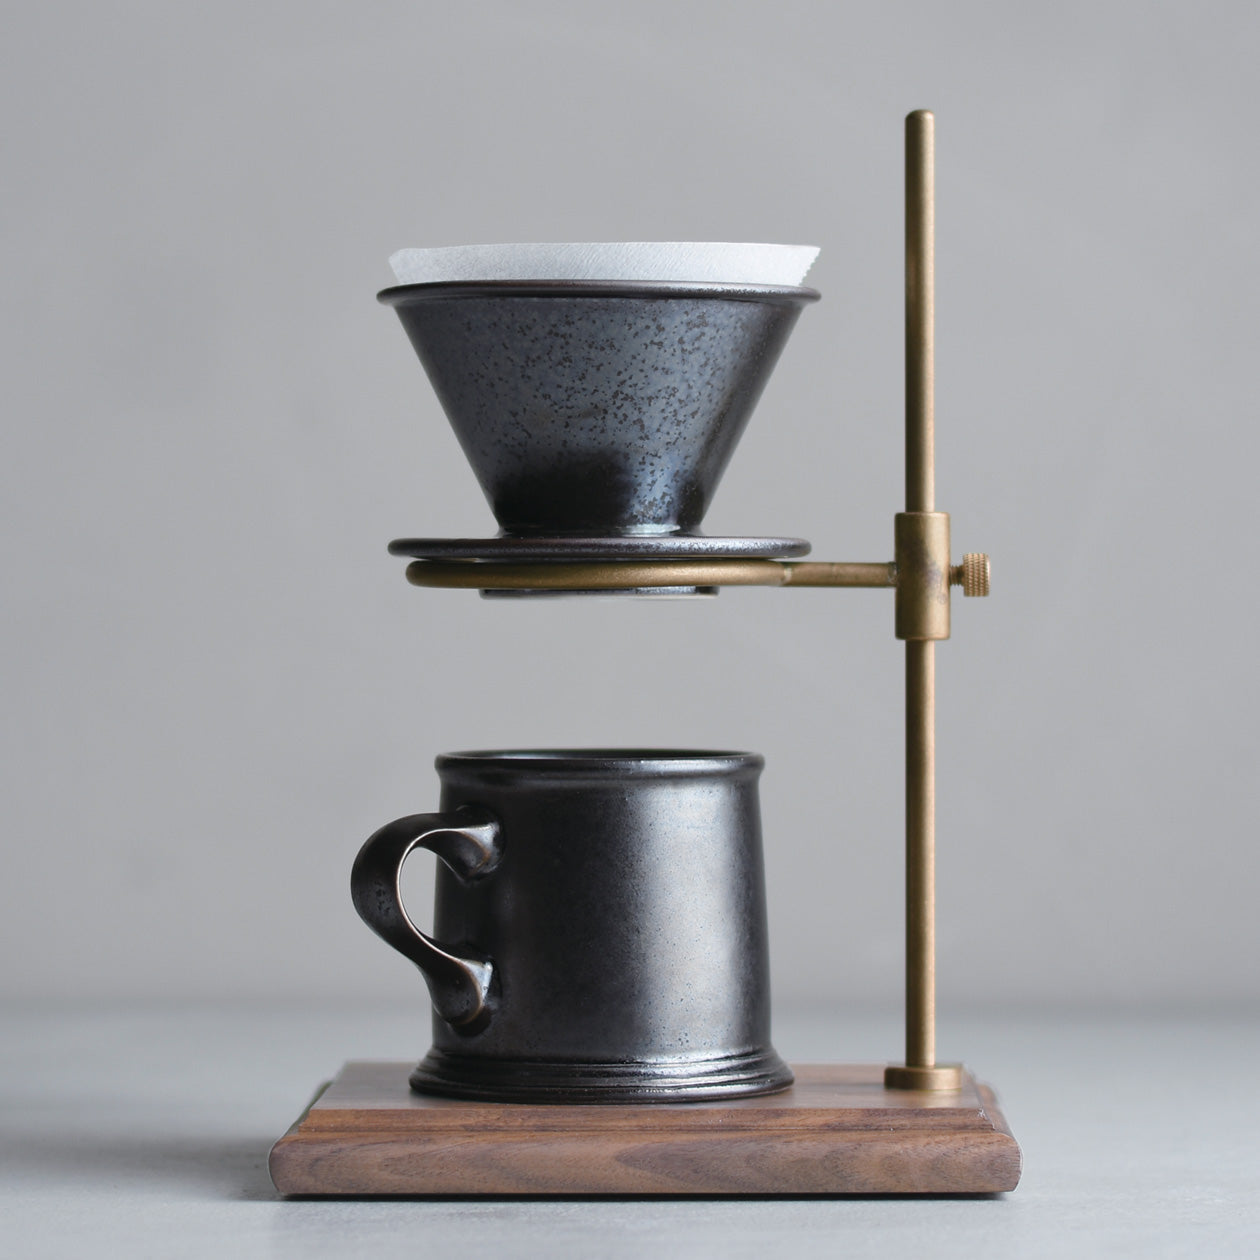 SCS-S01 Mug black, brewer and coffee stand